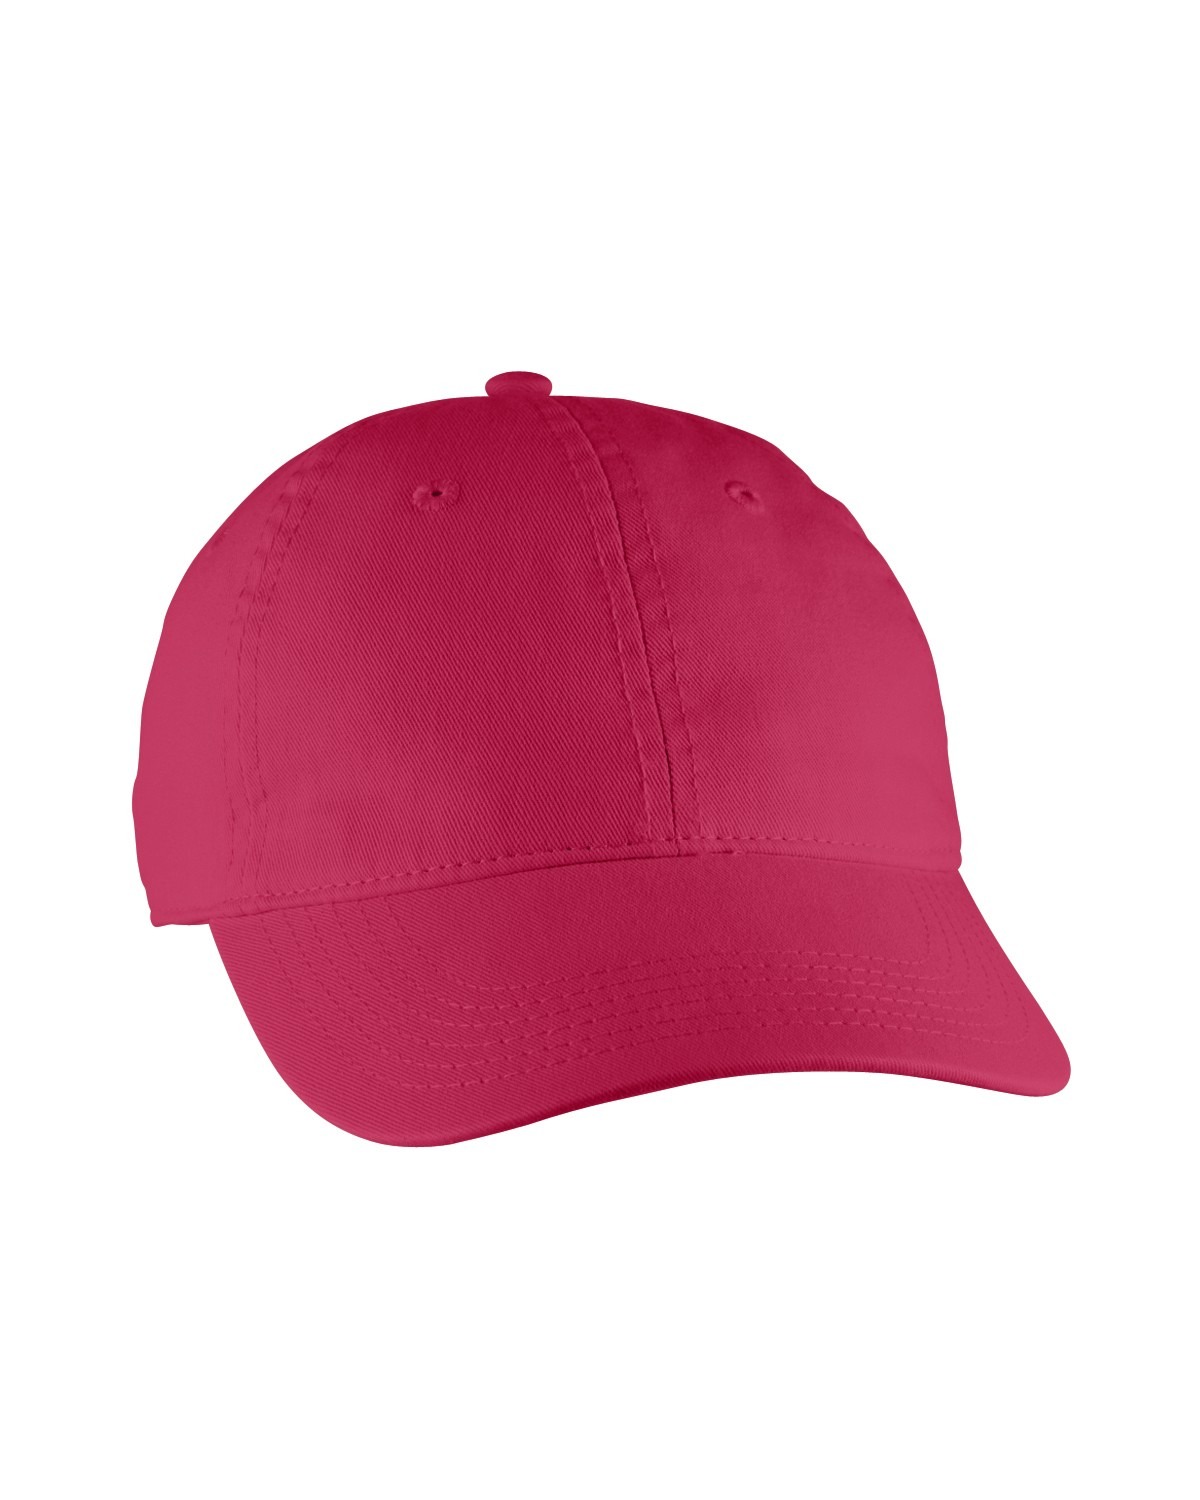 103 Comfort Colors RED